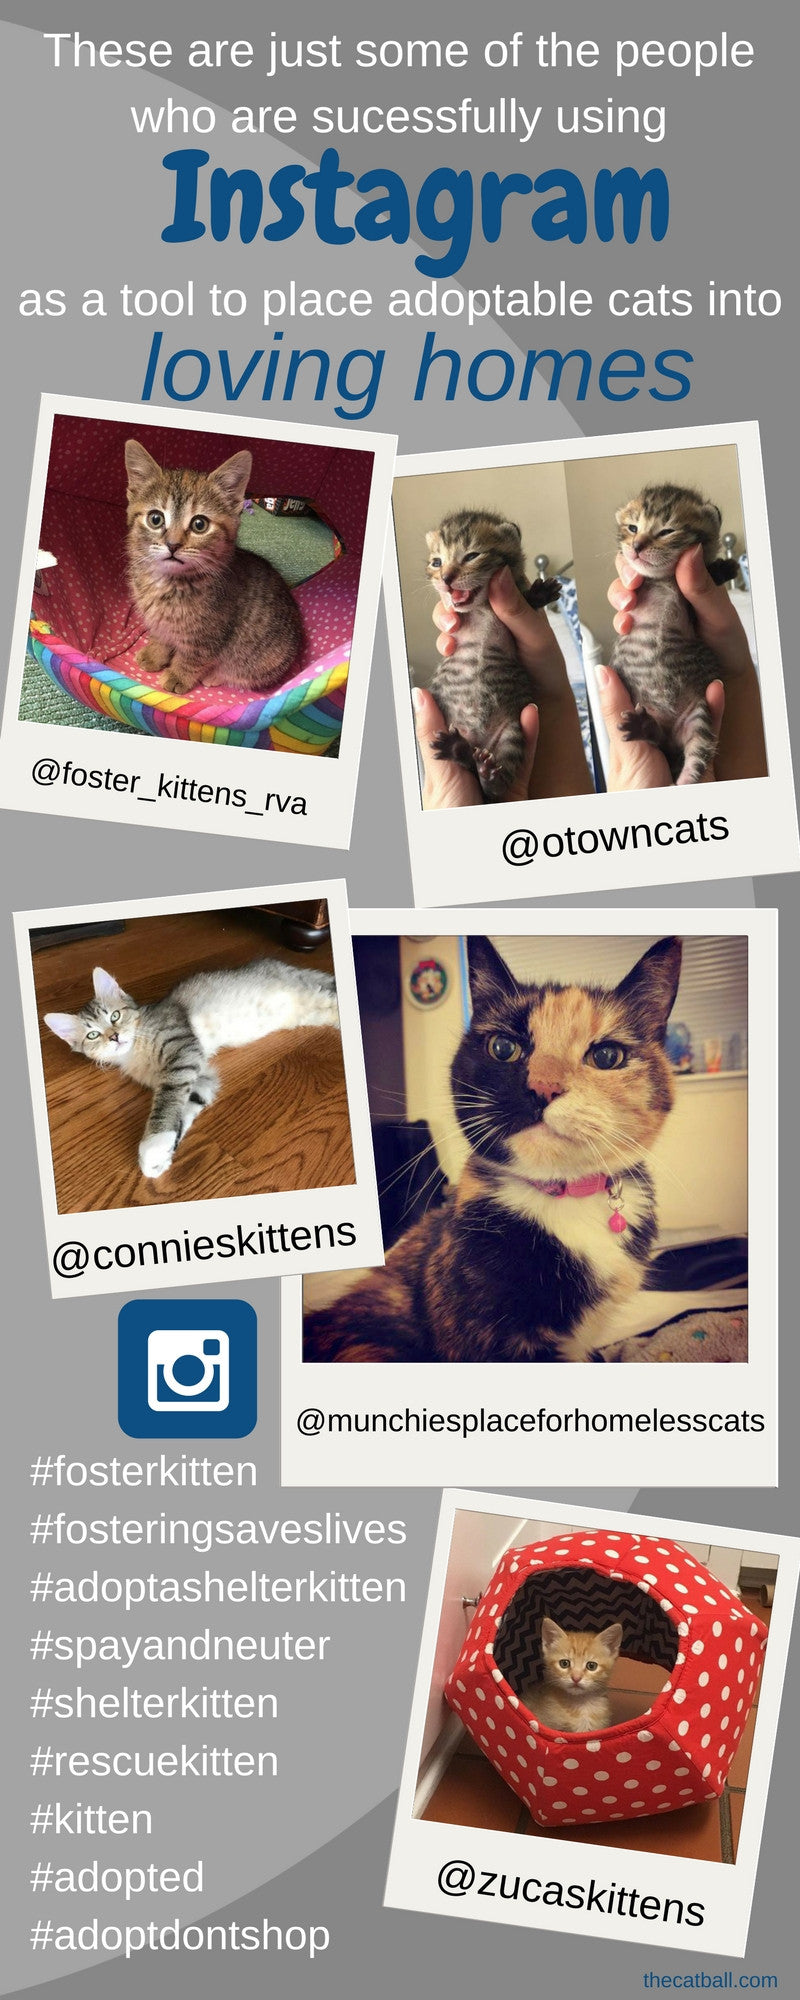 People are successfully using Instagram accounts to promote adoptable cats and kittens, helping the animals to find new homes.